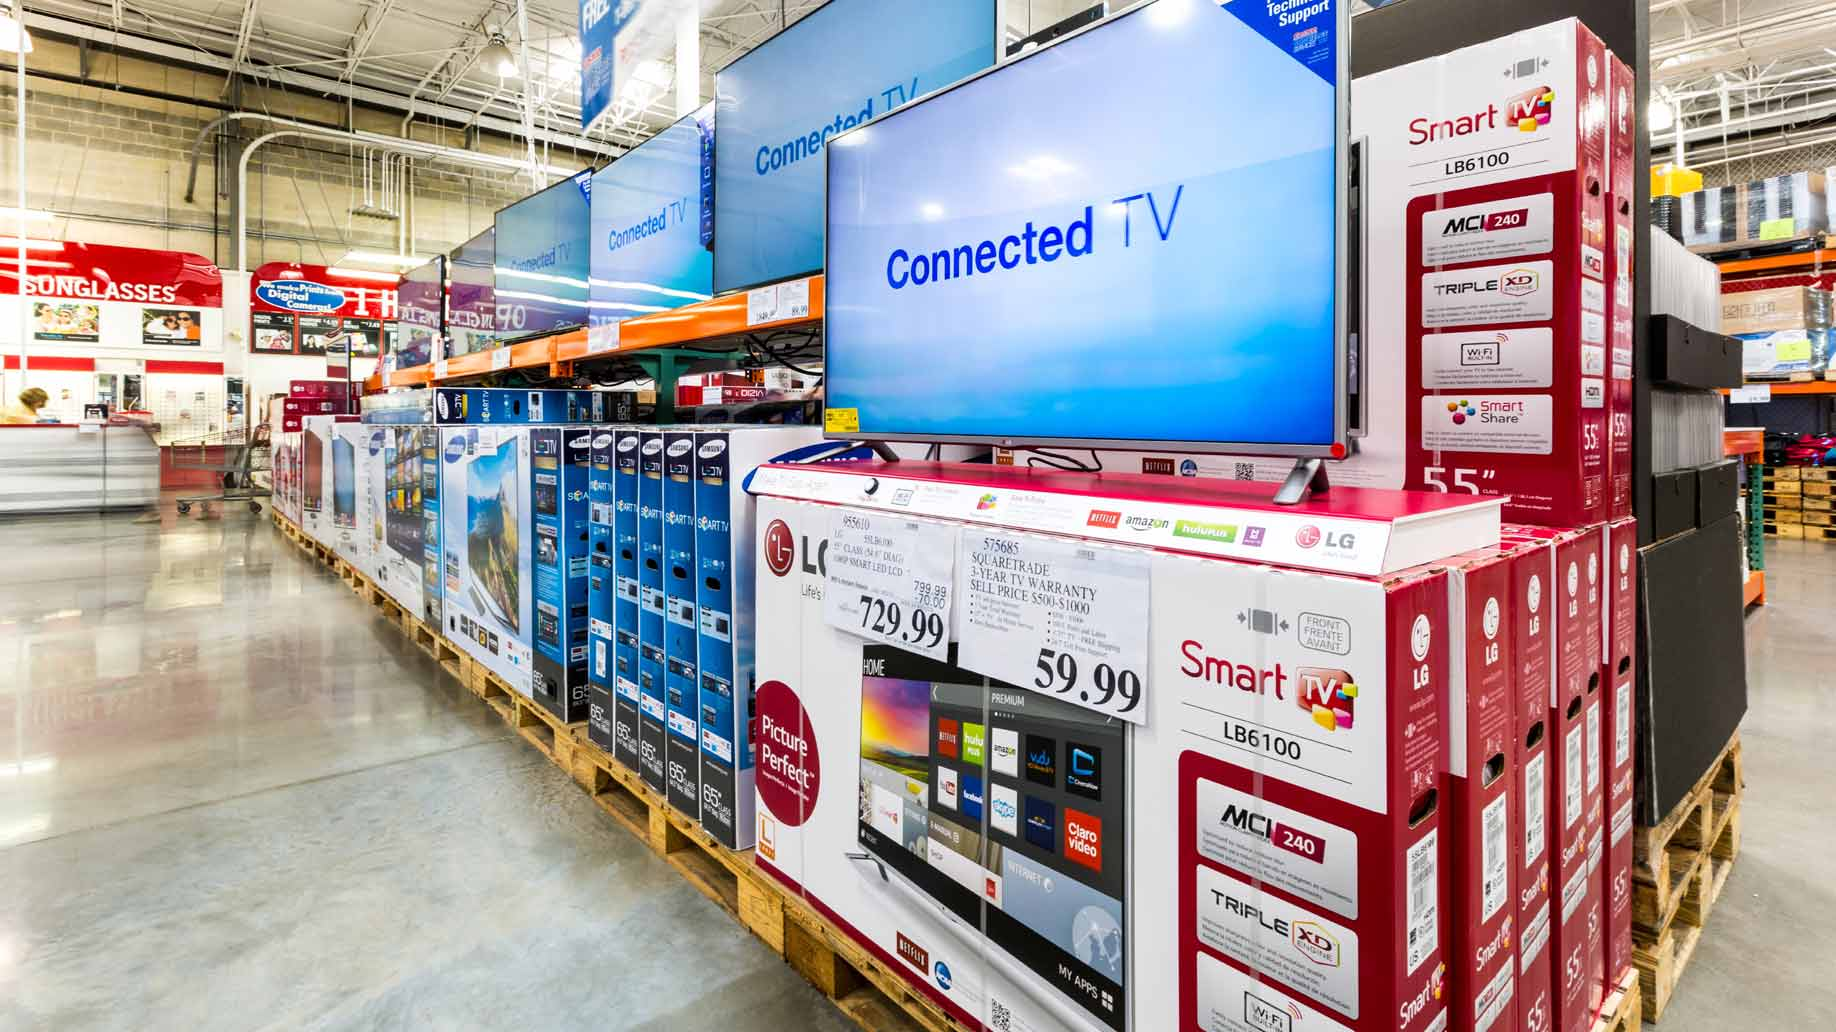 tv in a warehouse store, photo by mandritoui